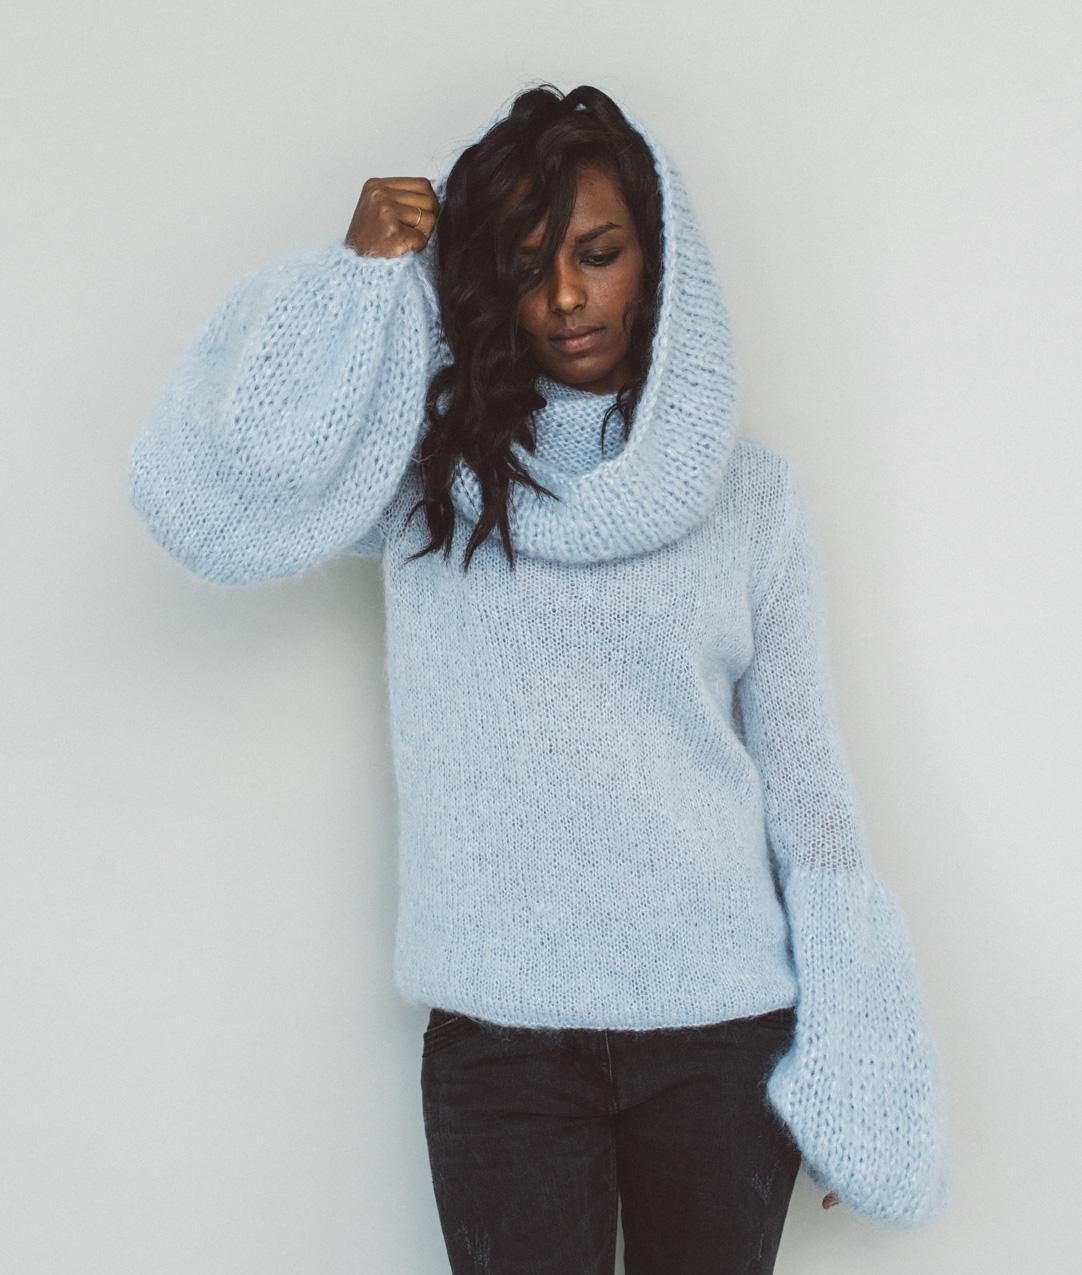 Sweaters and Tops - Wool - Infinity Sweater - 1